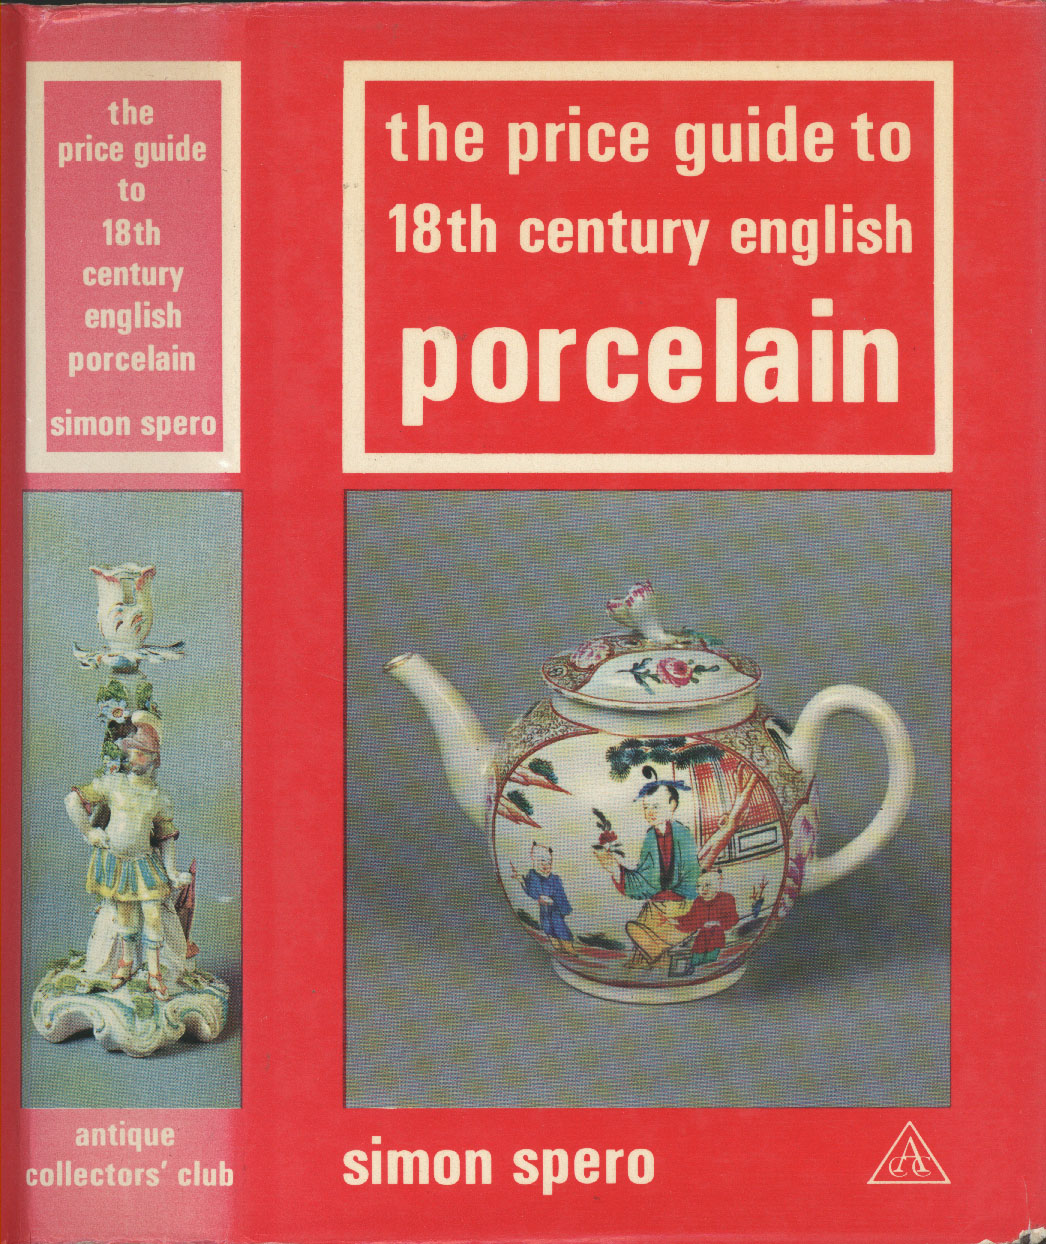 Price Guide to 18th Century English Porcelain book.